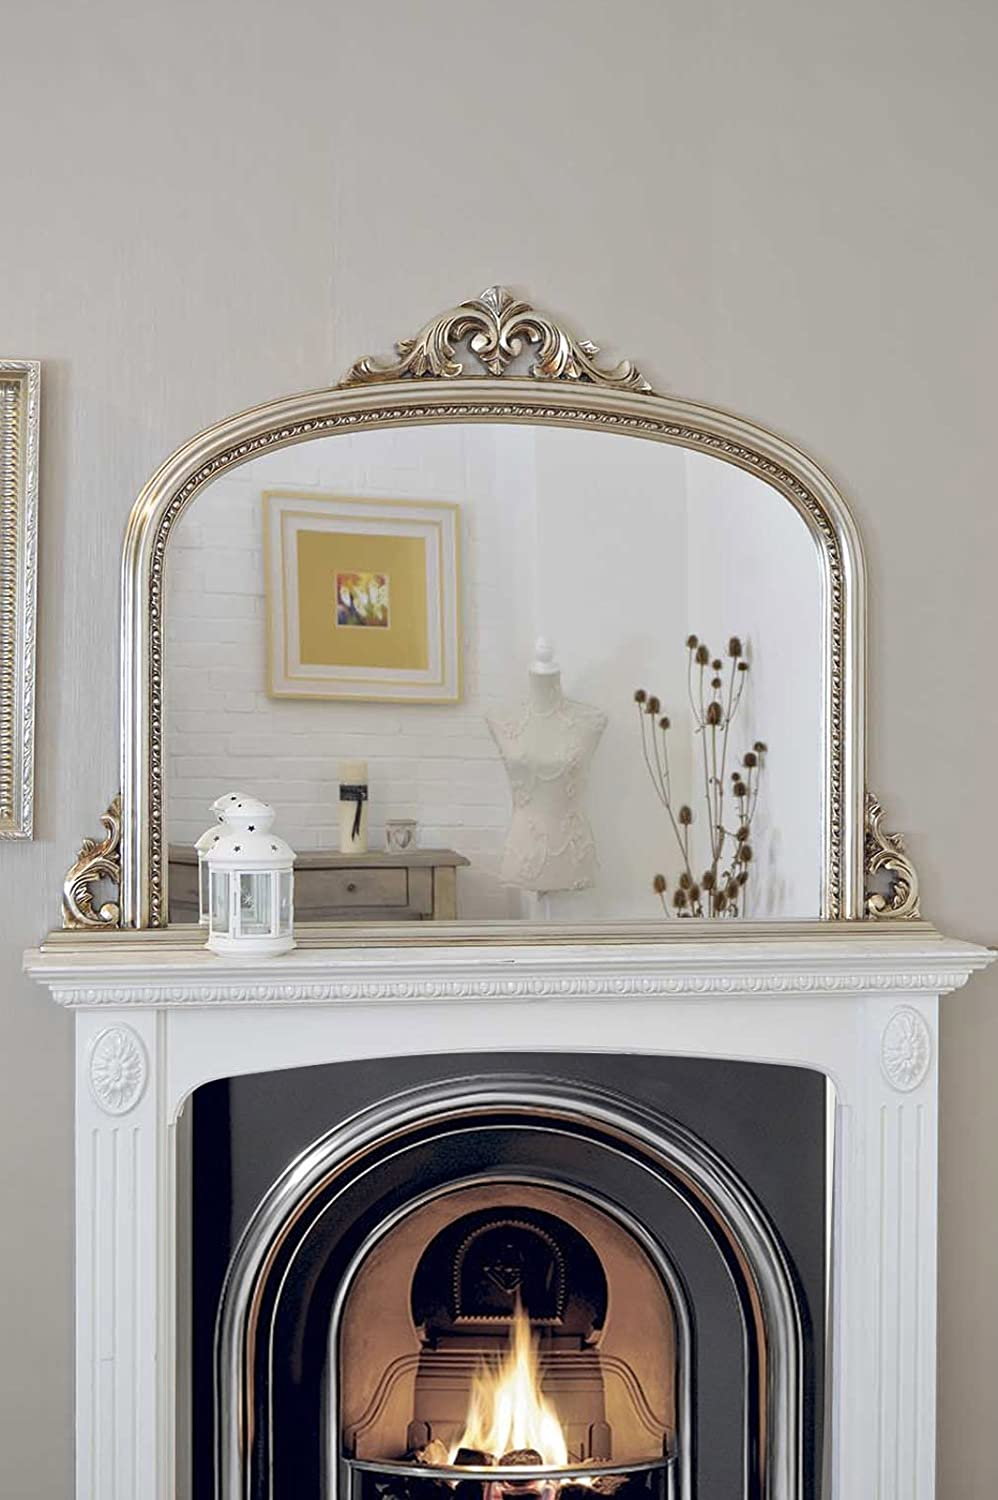 ornate fireplace heads horses above stone in on room s horse photos with large mantelpiece living photo stock circular antique neutral mirror